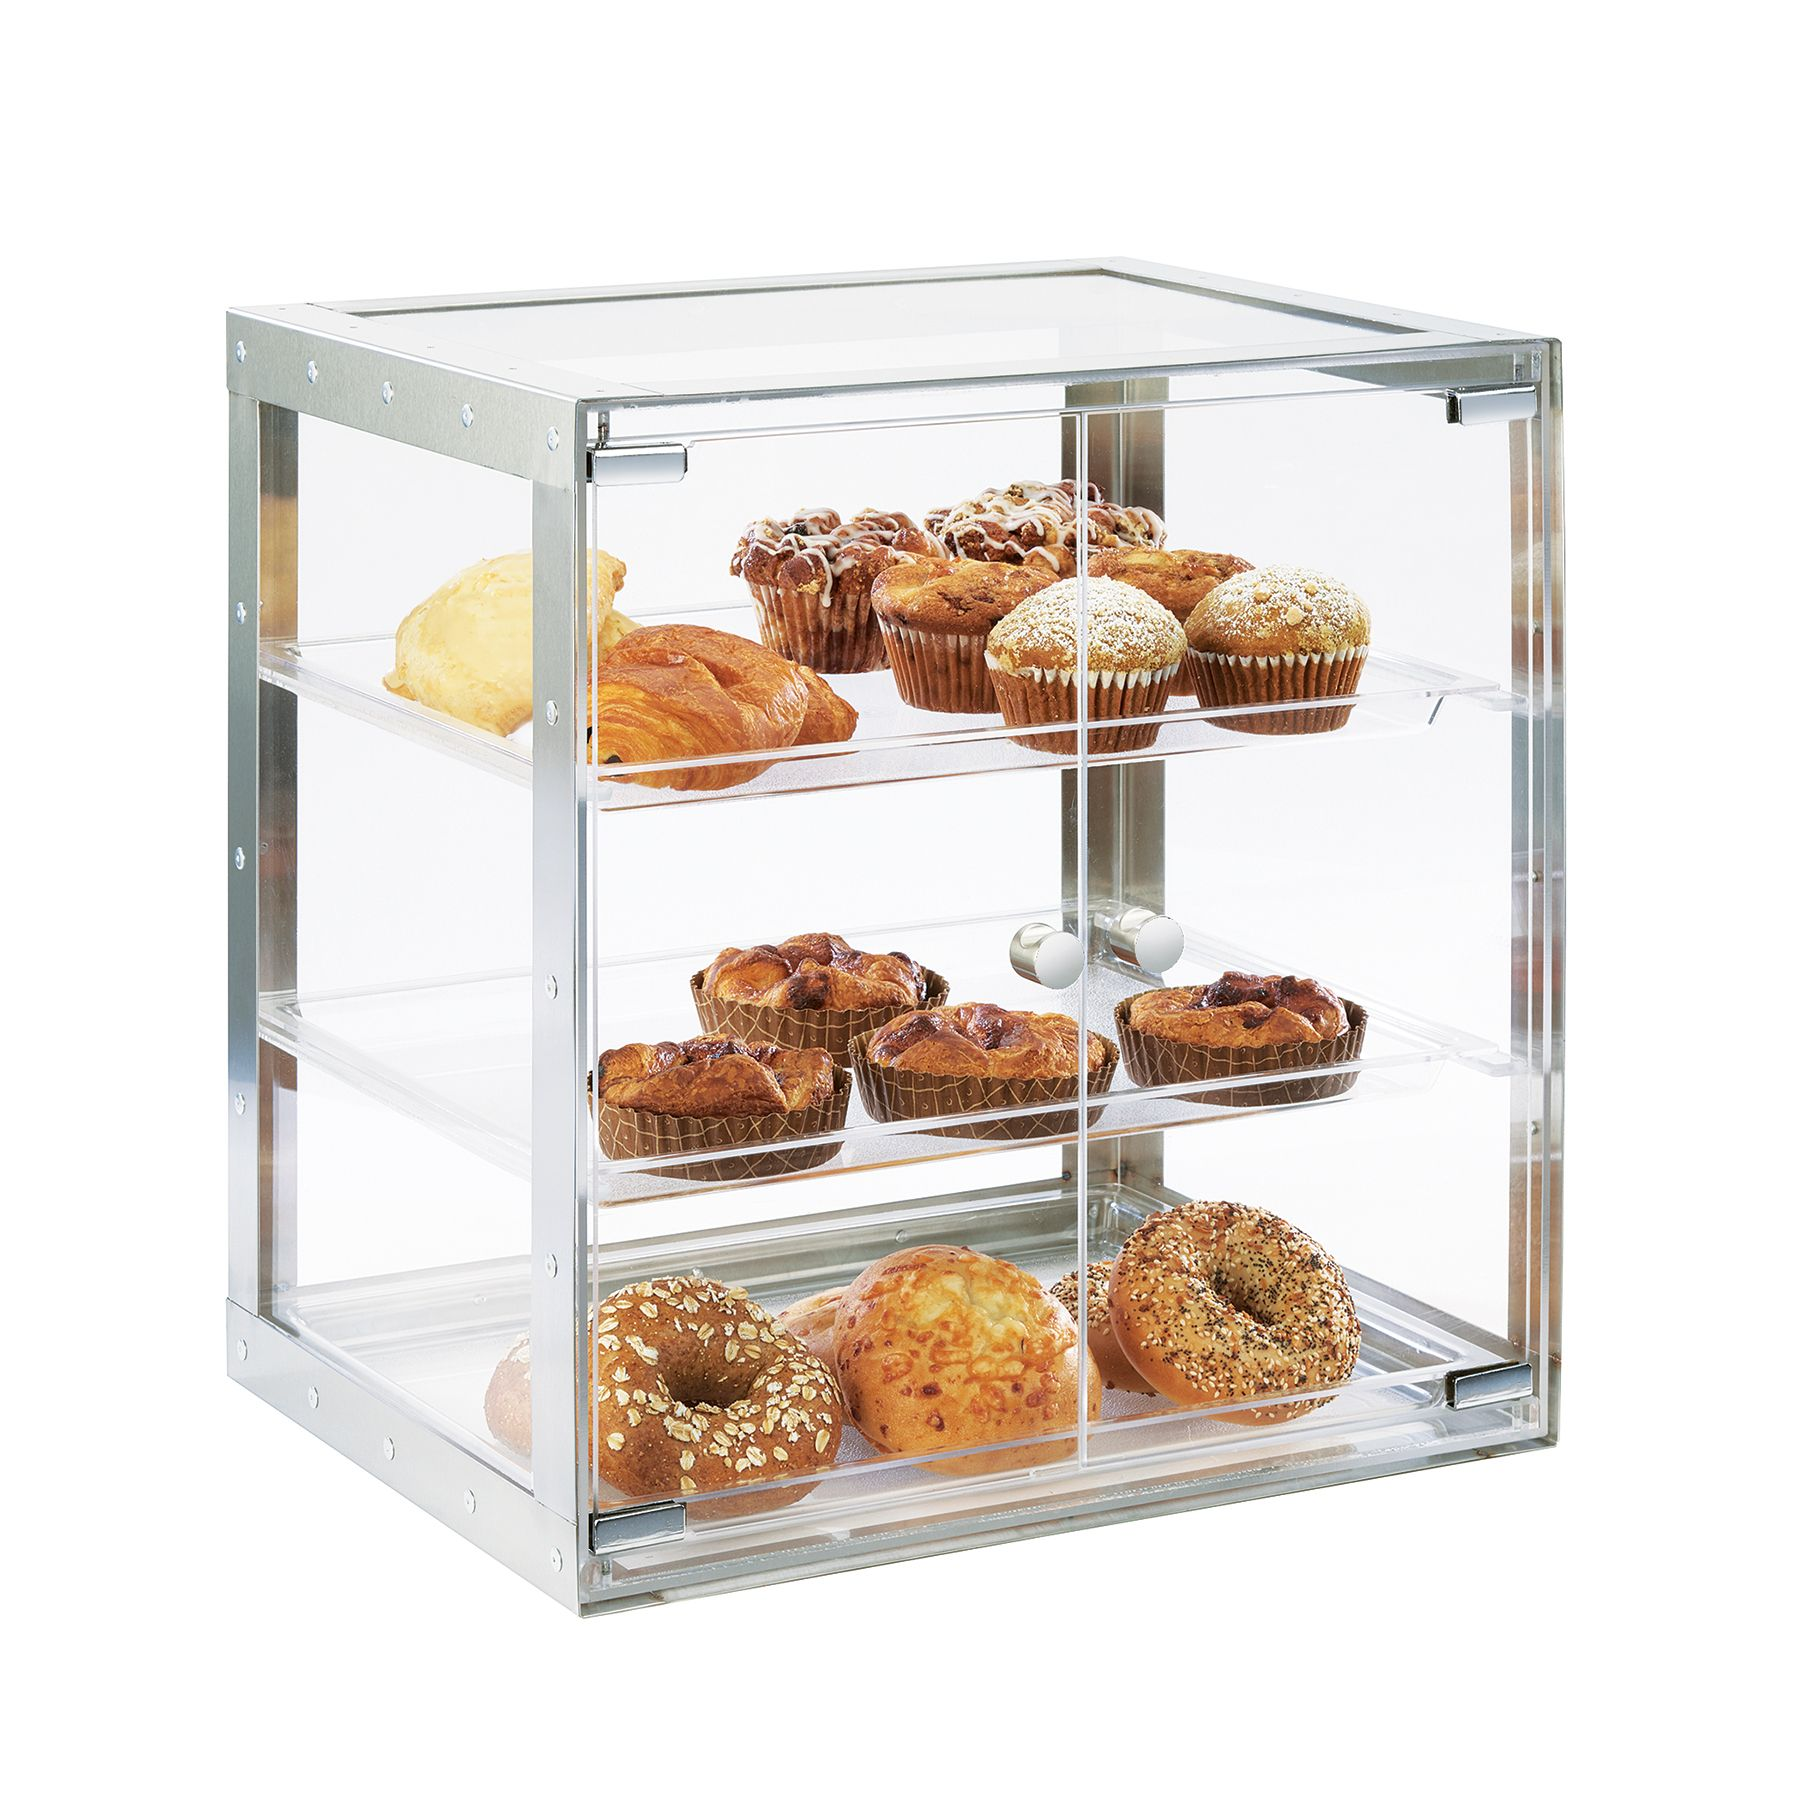 Countertop Bakery Case Urban Case Display Item 3413 55 And 325 13 12 Dual Front